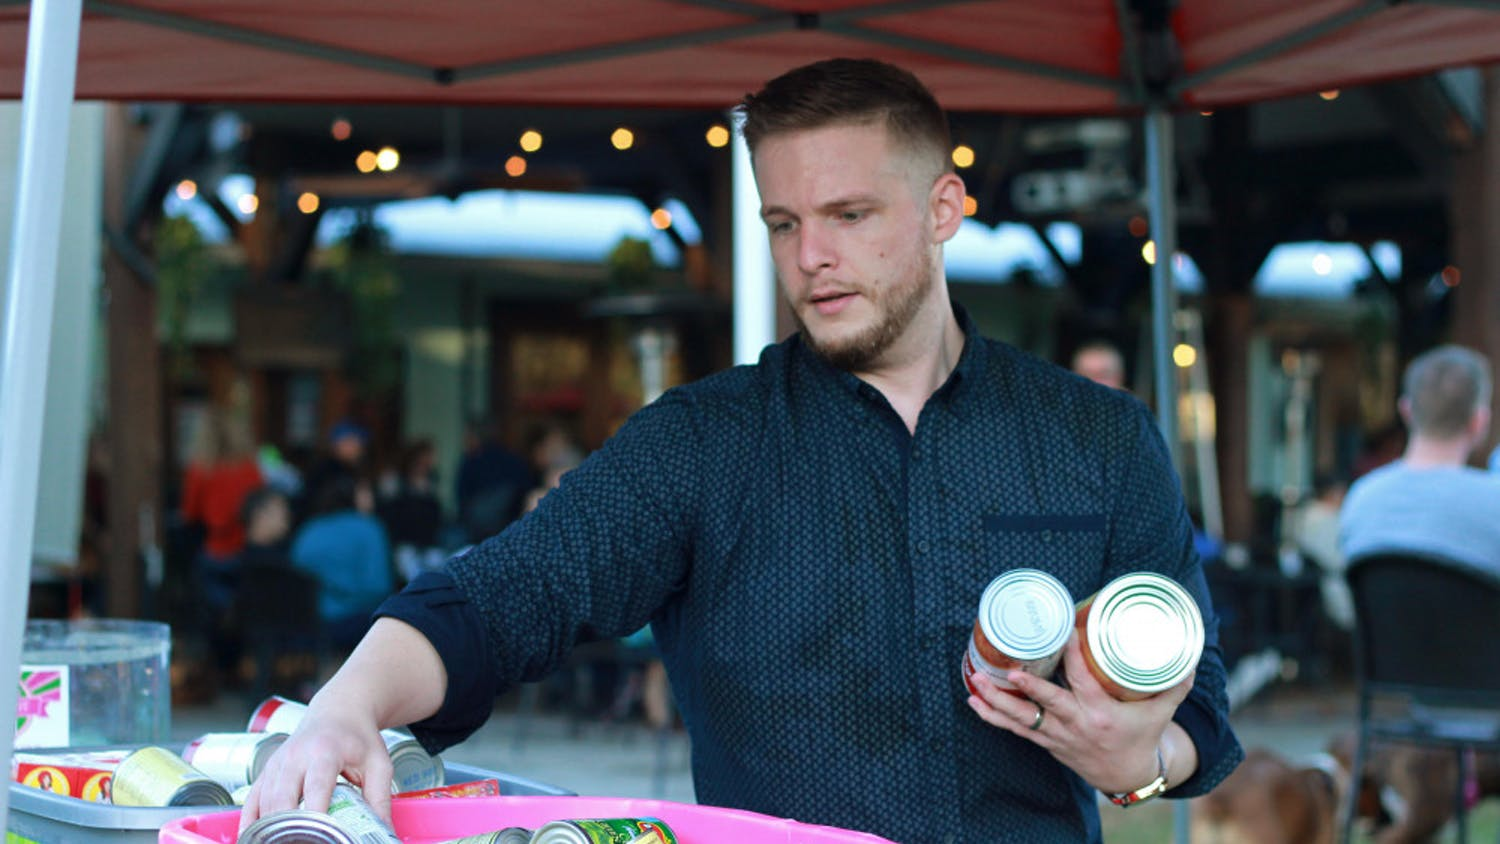 Fundraising organizer Andrew Poe, 28, consolidates donations of canned food Sunday at a food truck rally. Donated food will be given to Bread of the Mighty Food Bank.